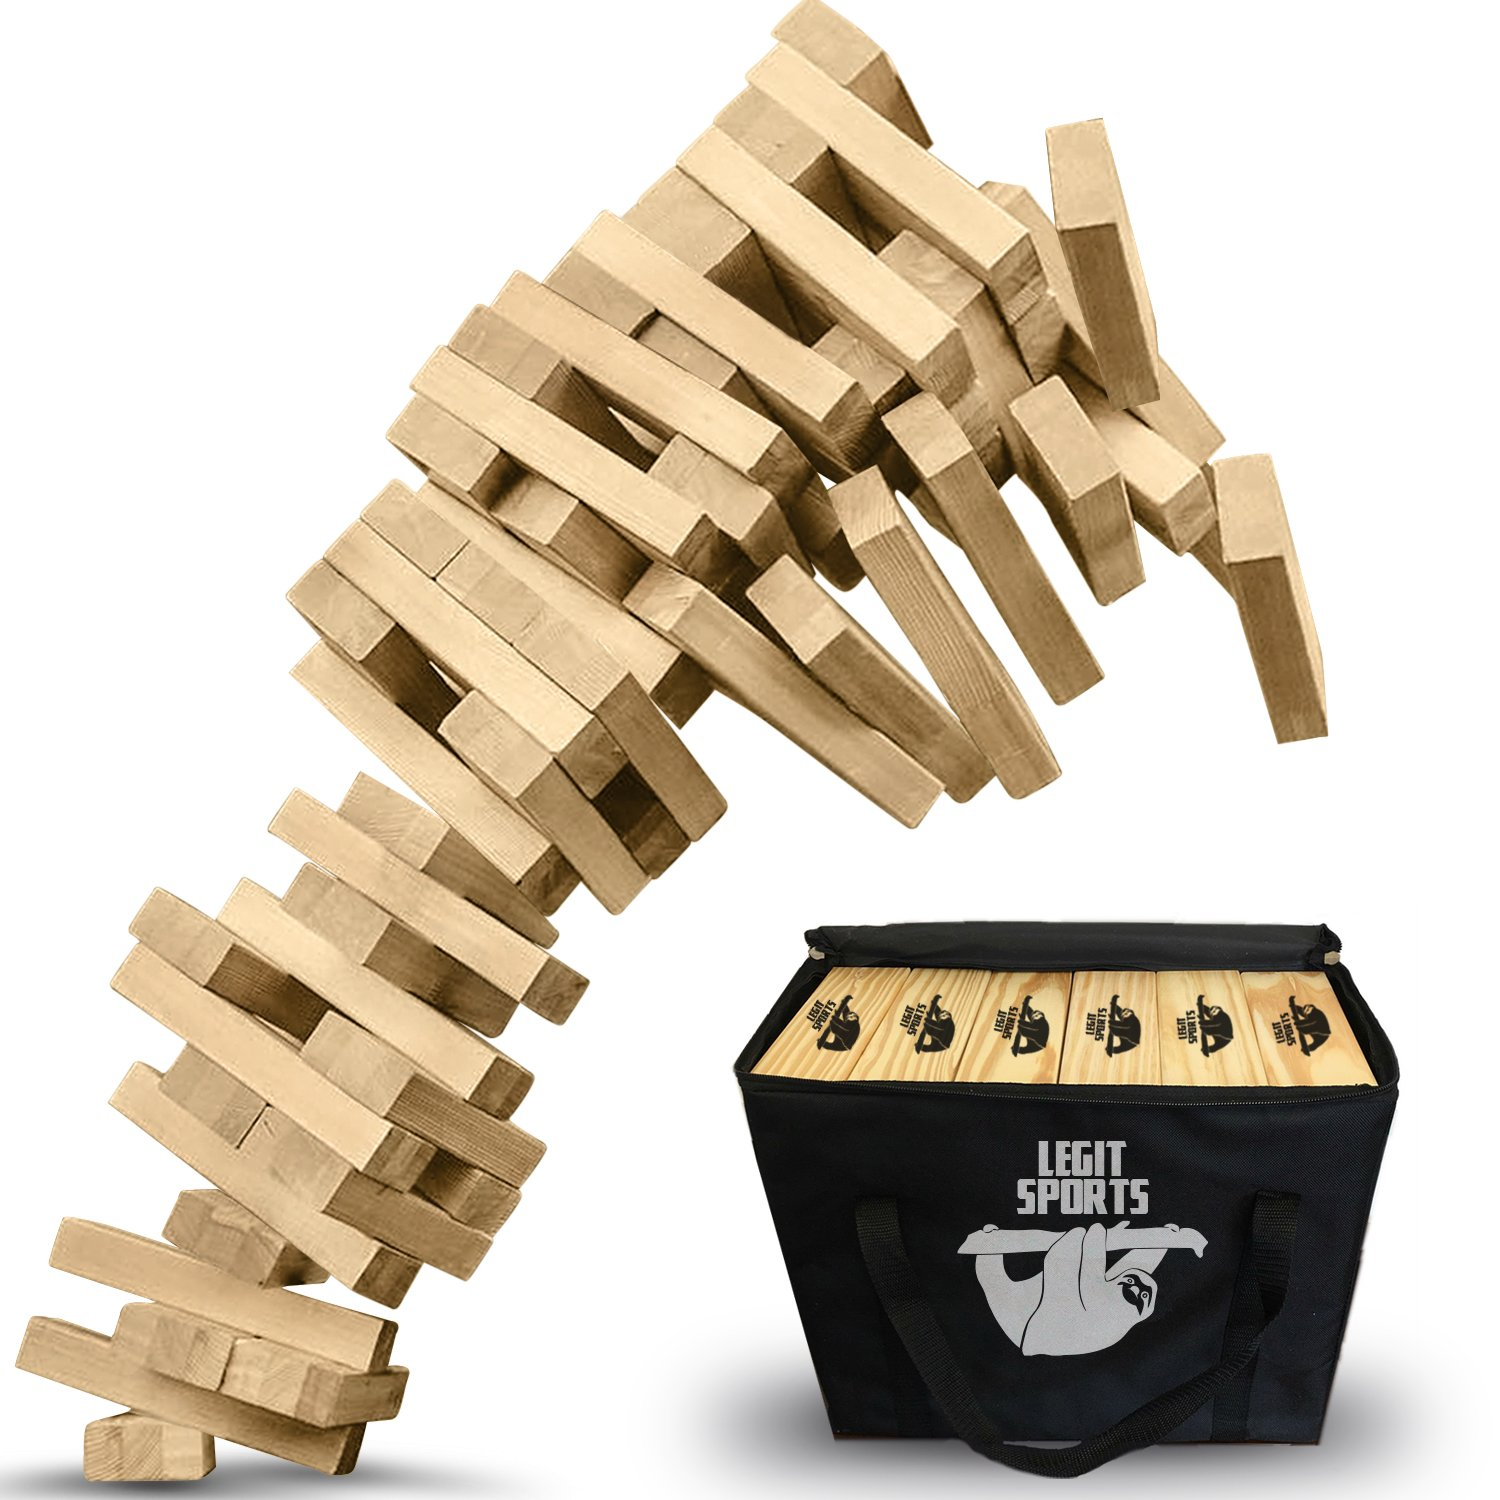 Giant Tumbling Timbers by Legit Sports - The Big Life Size Stacking Blocks Game Everyone Loves- Jumbo Tumbling Timbers Set Includes Large Stacking Wood Blocks - in-Door Outdoor Yard Fun!